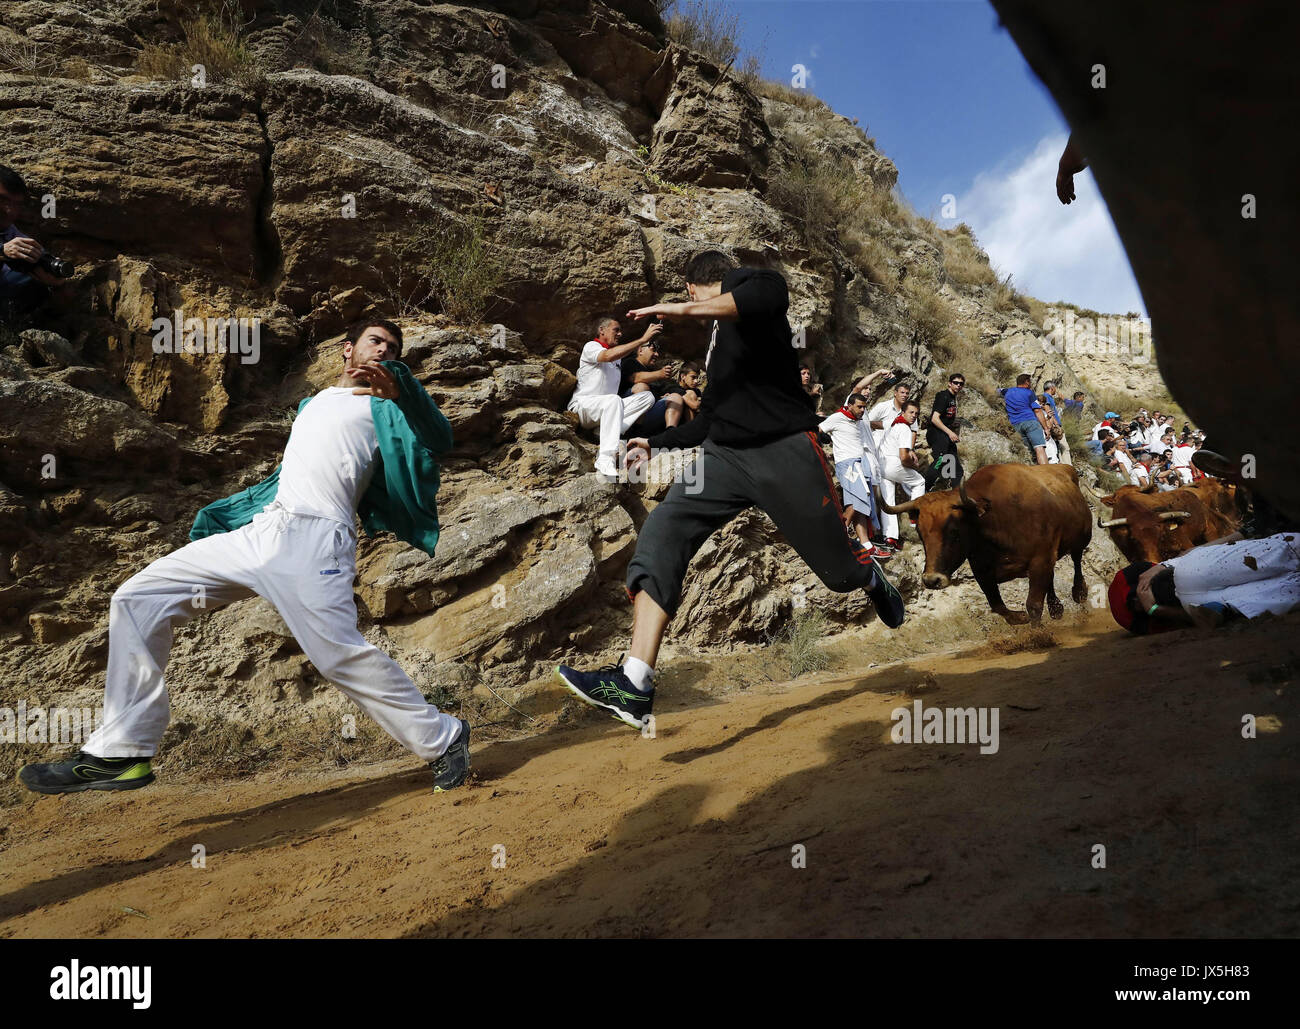 Falces, Navarra, northern Spain, 15 August 2017. Bulls chase runners during the of Pilon bull run held in Falces, - Stock Image